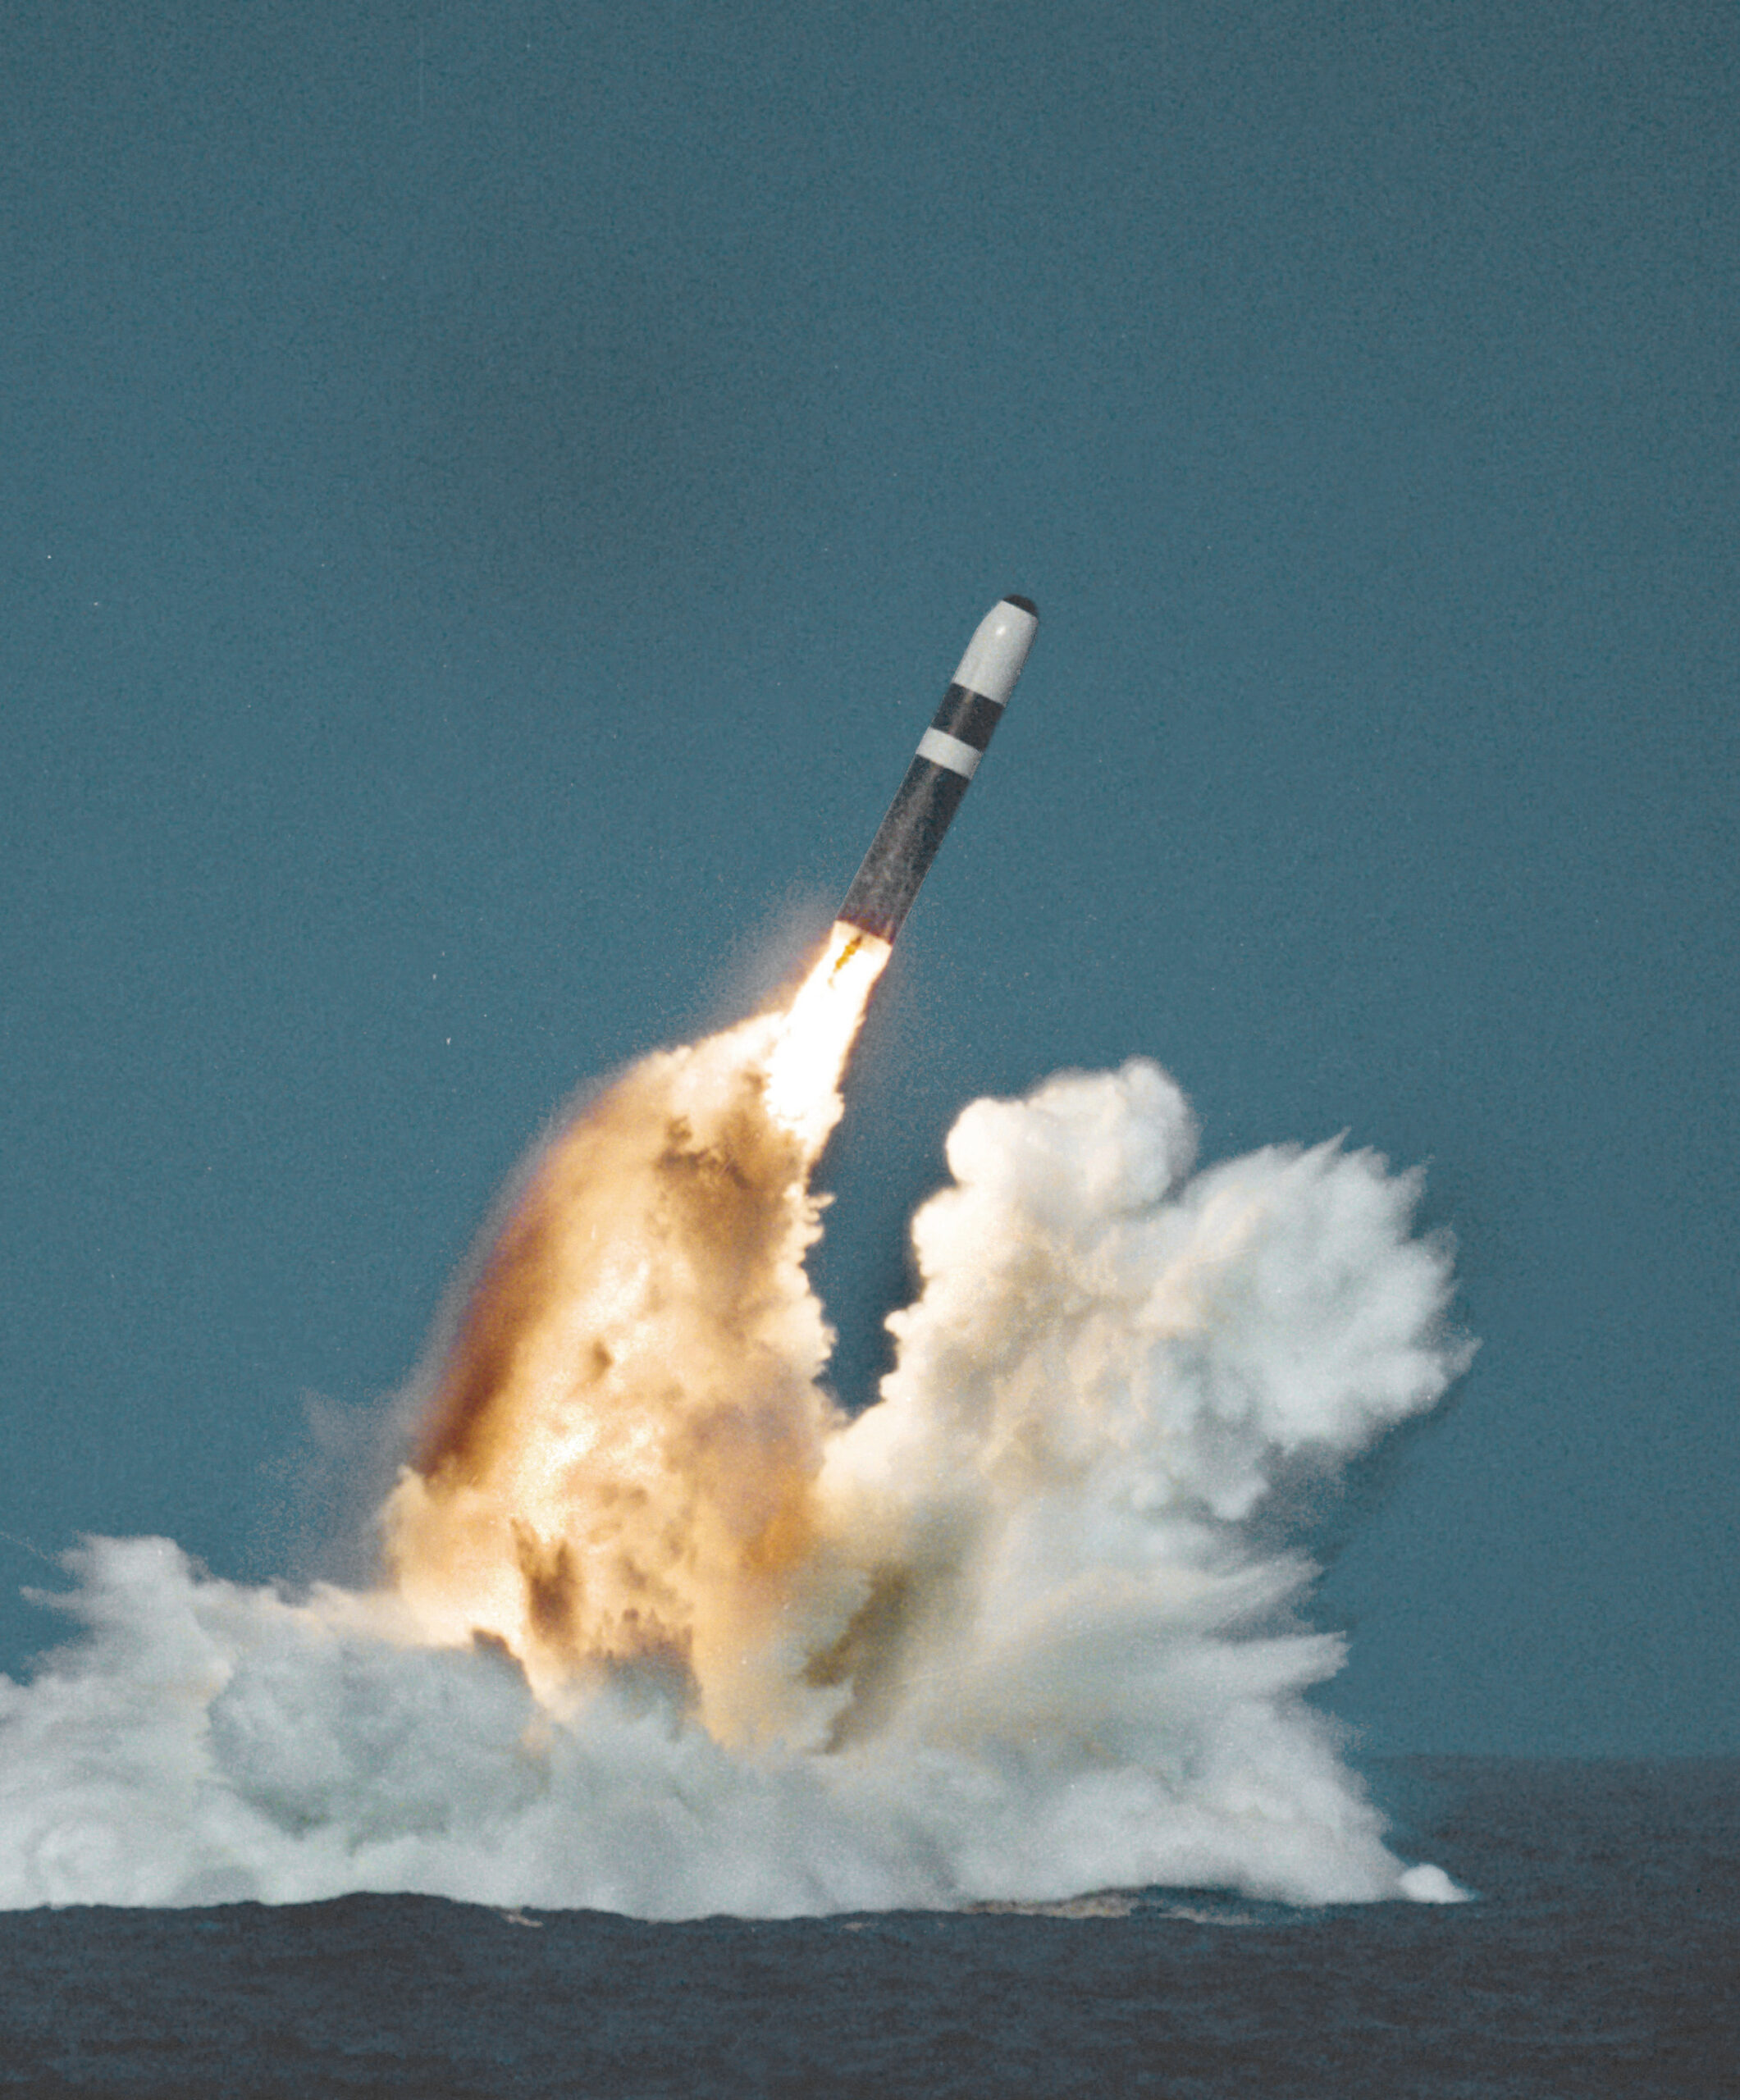 Towards global nuclear order: deterrence, assurance and reductions (WP1211)